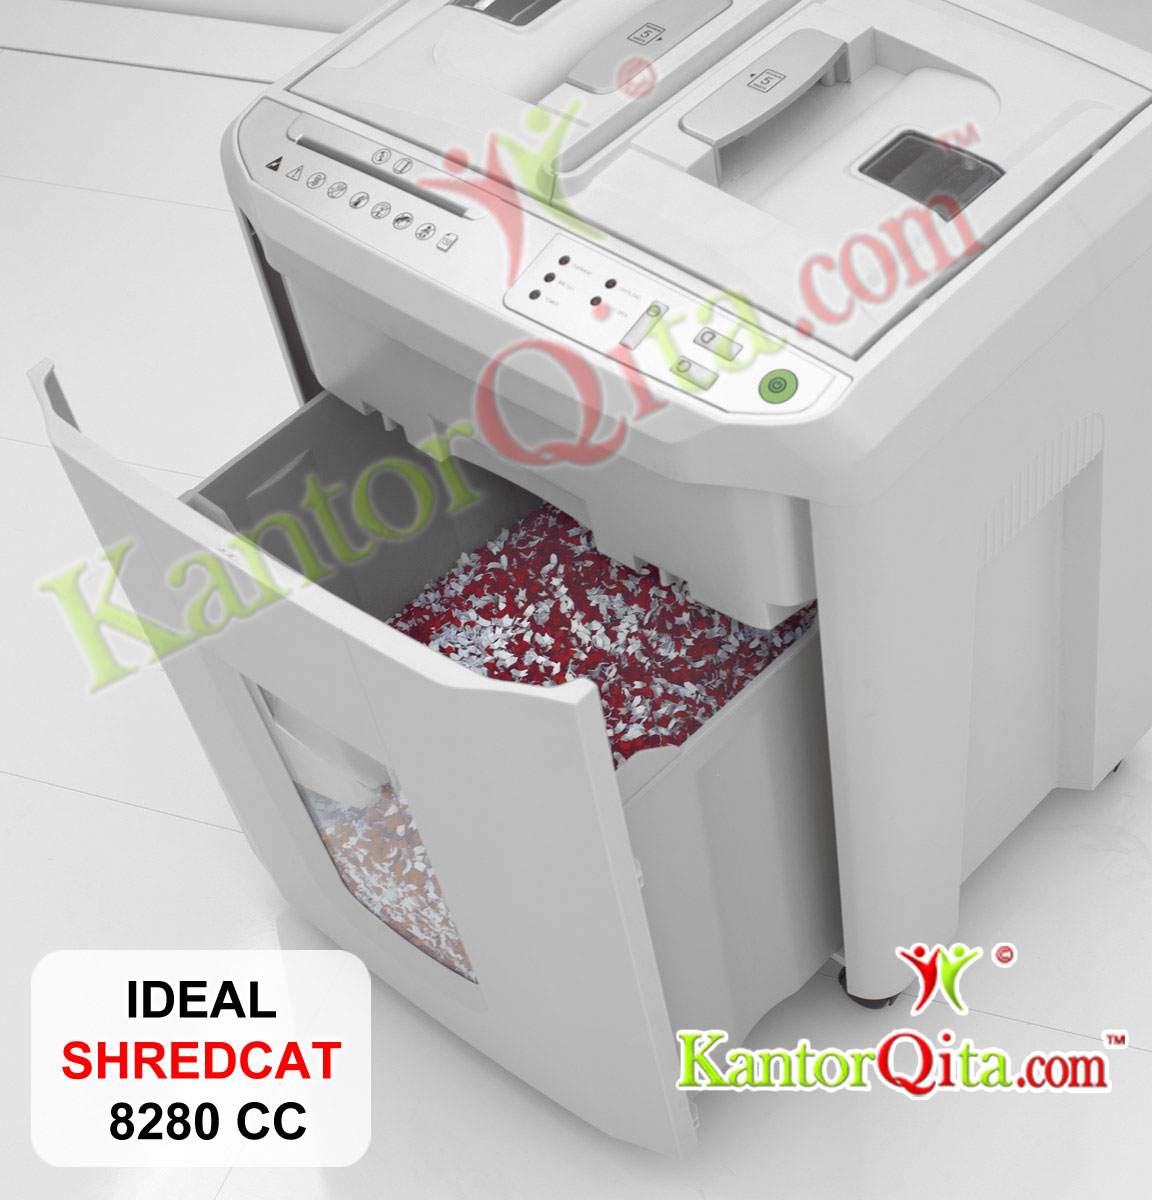 Practical Shred Bin in SHREDCAT IDEAL 8280